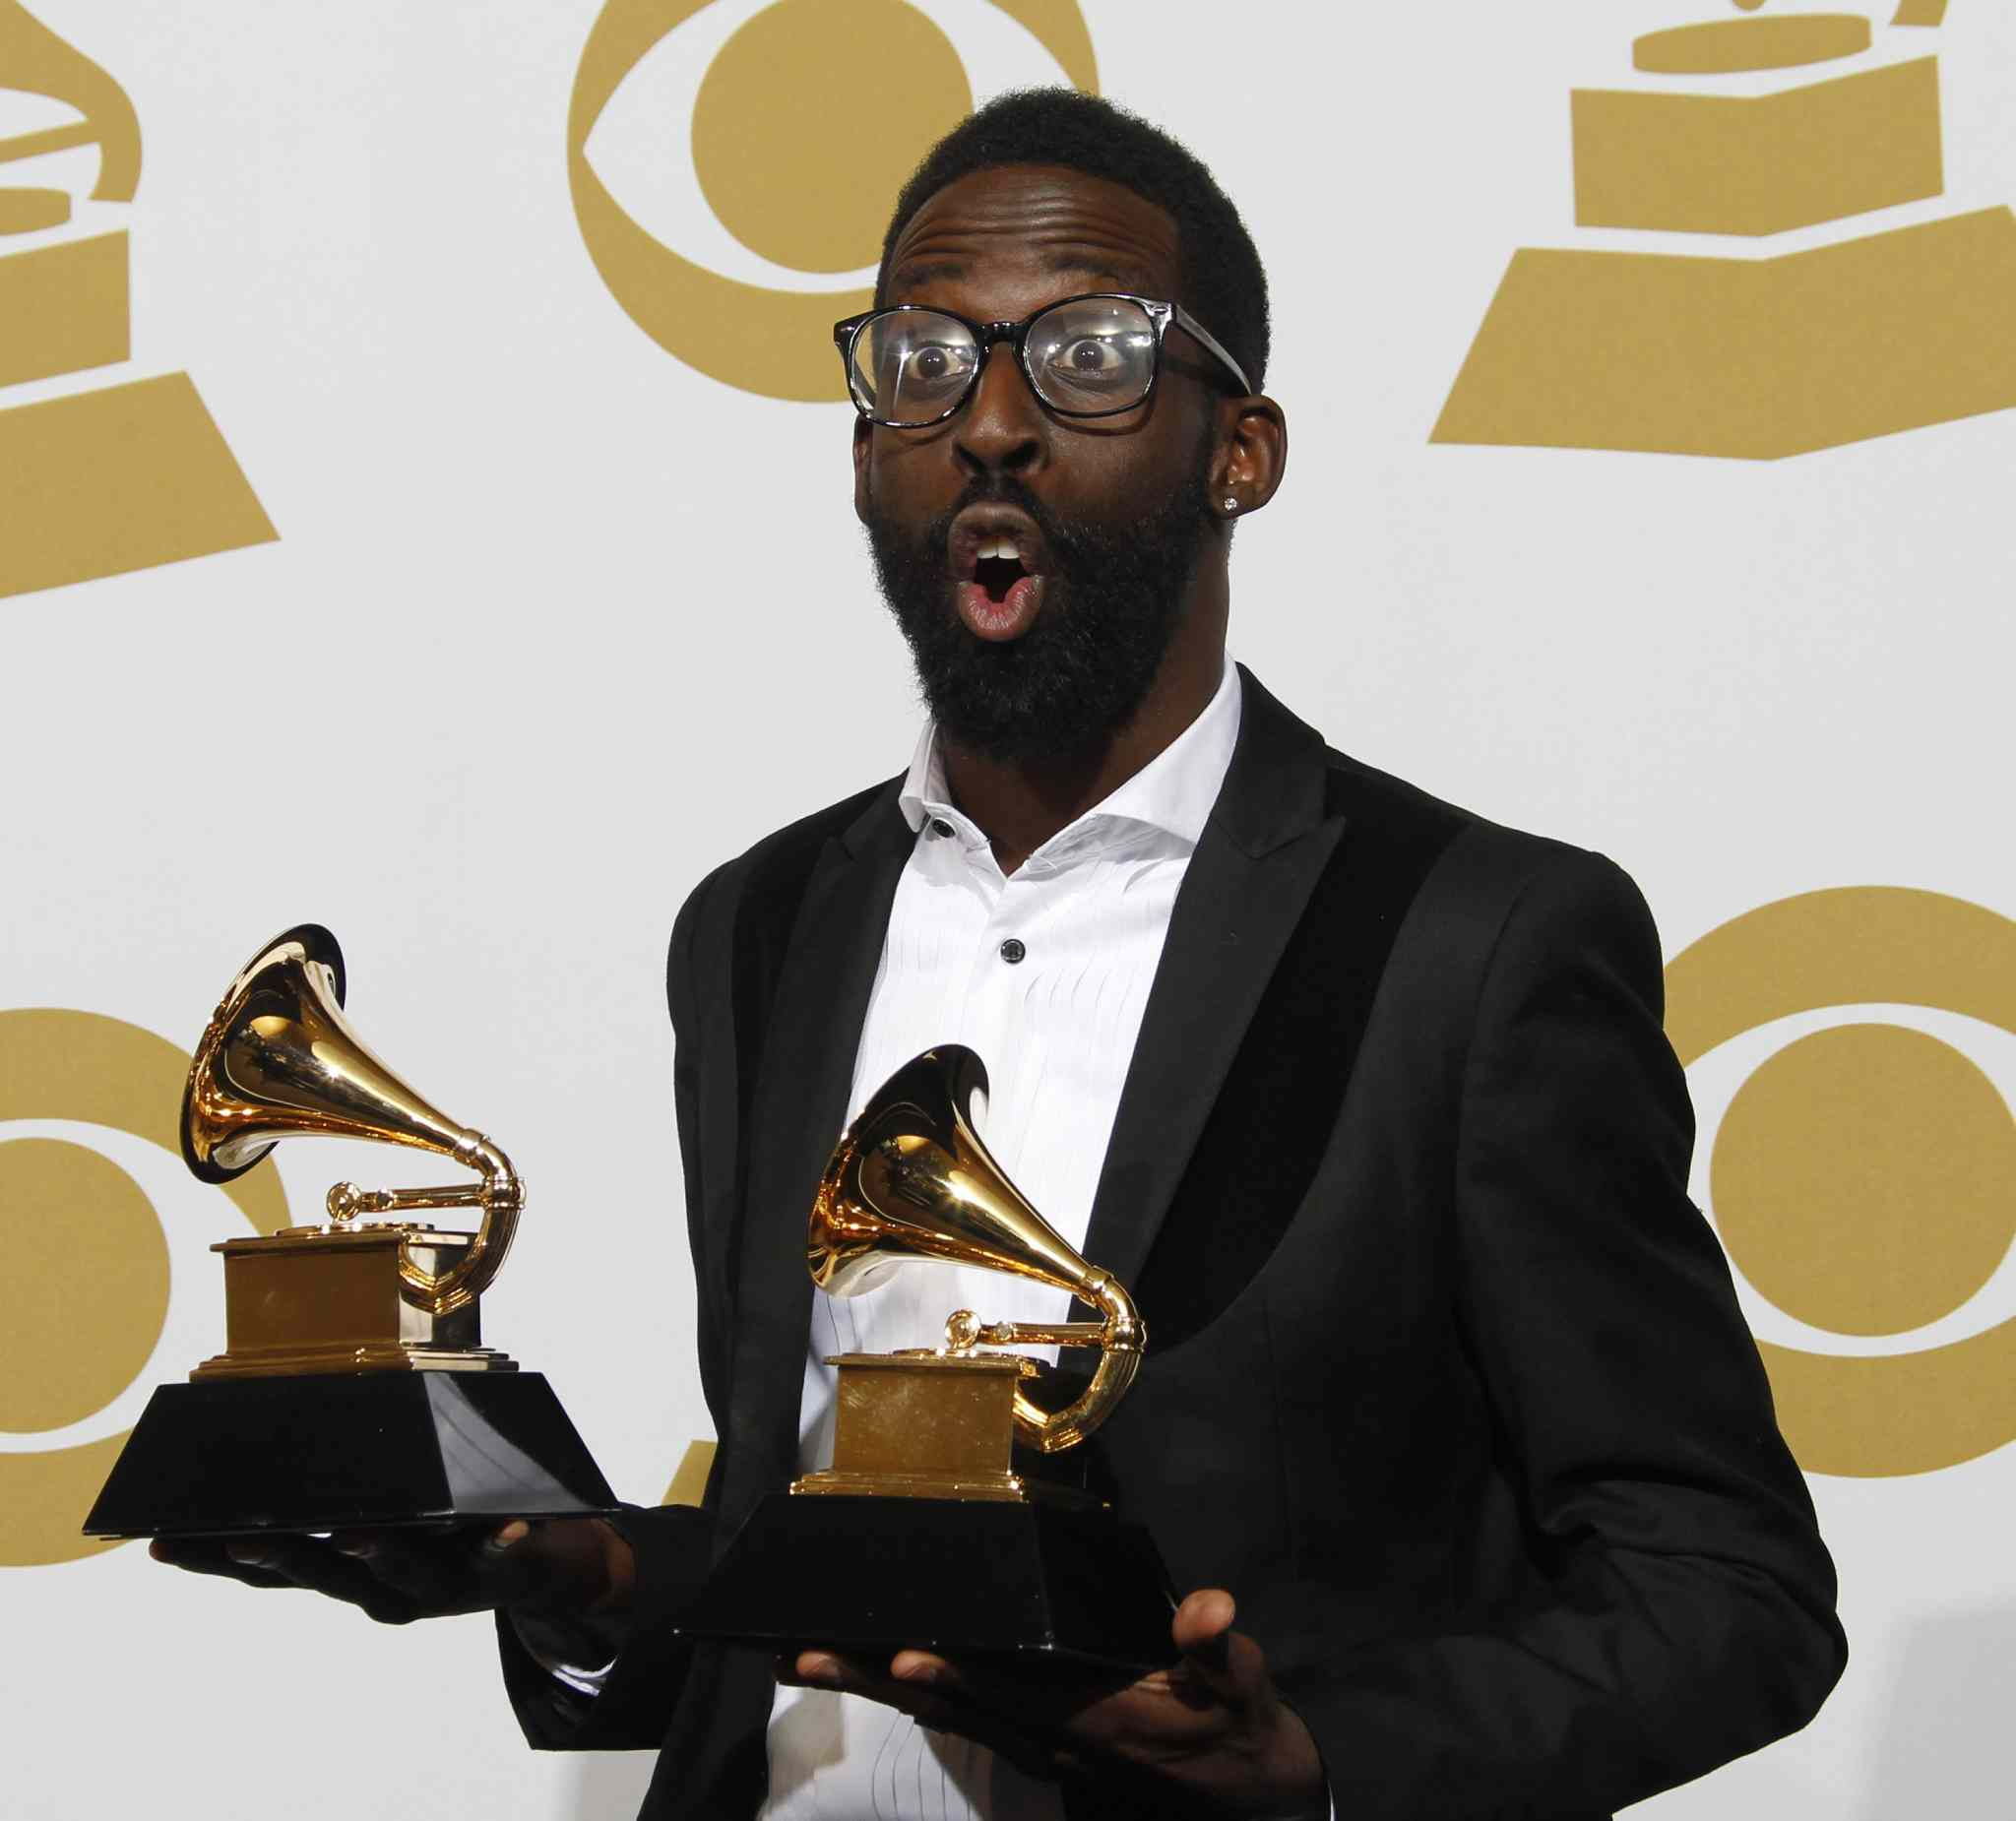 Tye Tribbett won two awards for,  If He Did It Before... Same God (Live) — Best Gospel and Greater Than (Live) — Best Gospel Album.